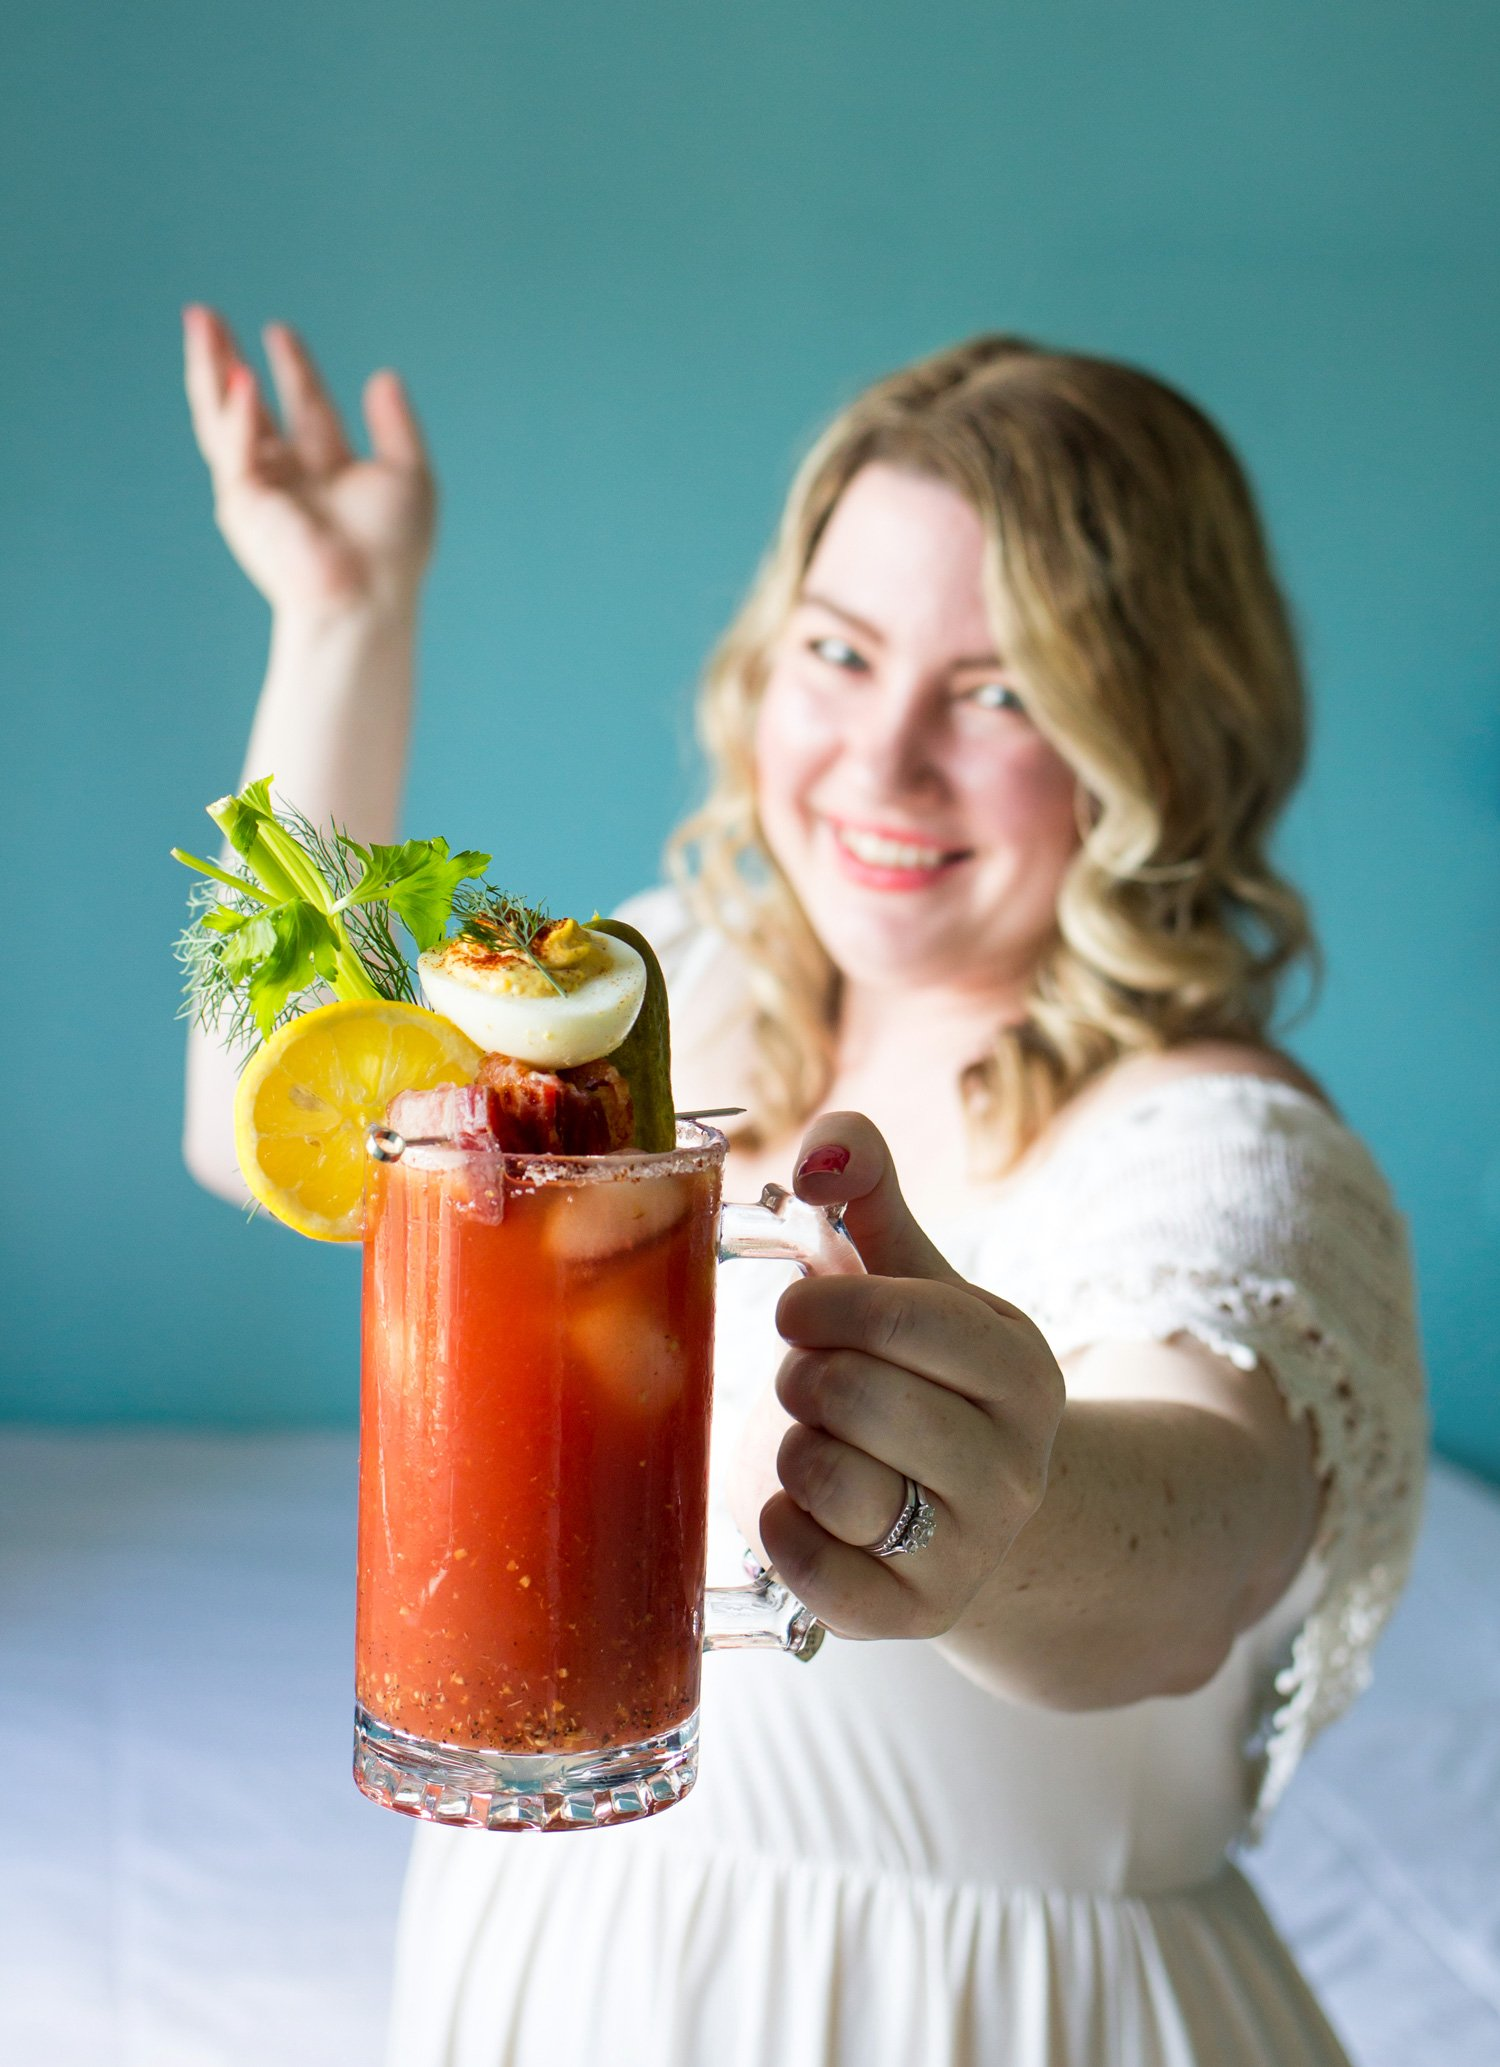 Natasha smiling will holding a giant Briney Mary in a Beer Mug